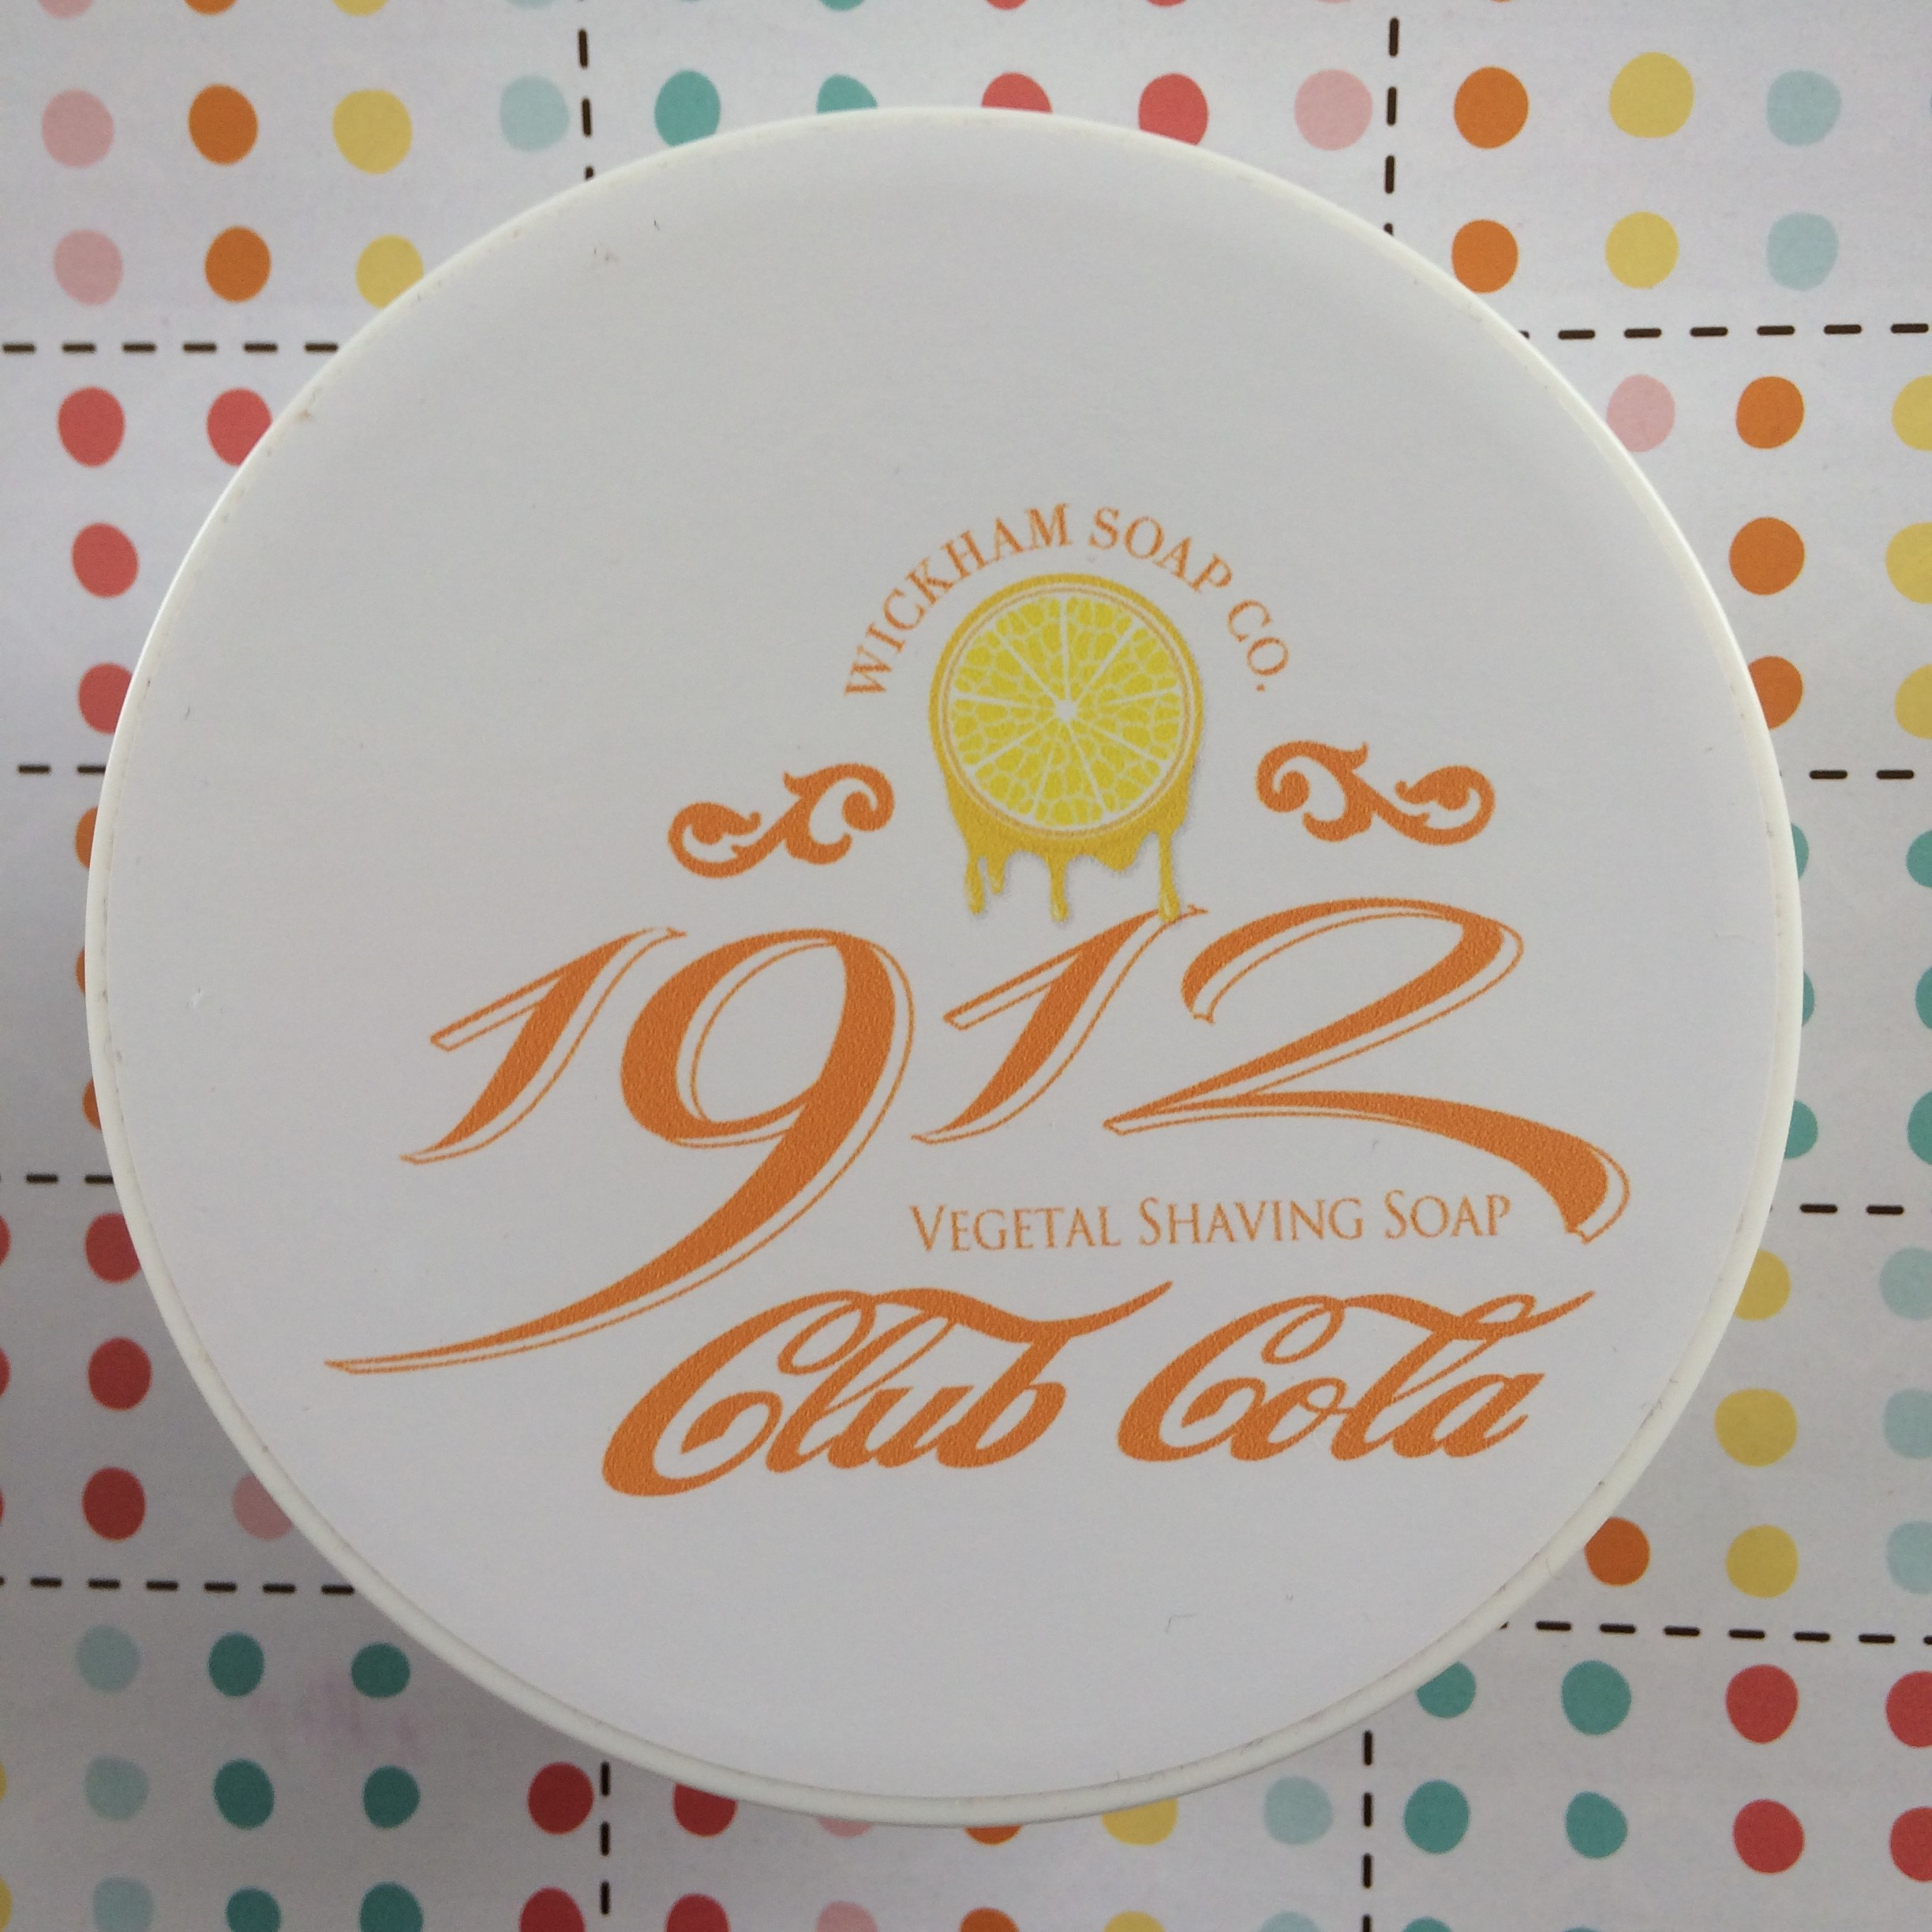 Wickham Soap Co 1912 Club Cola Shaving Soap | Agent Shave | Traditional Wet Shaving